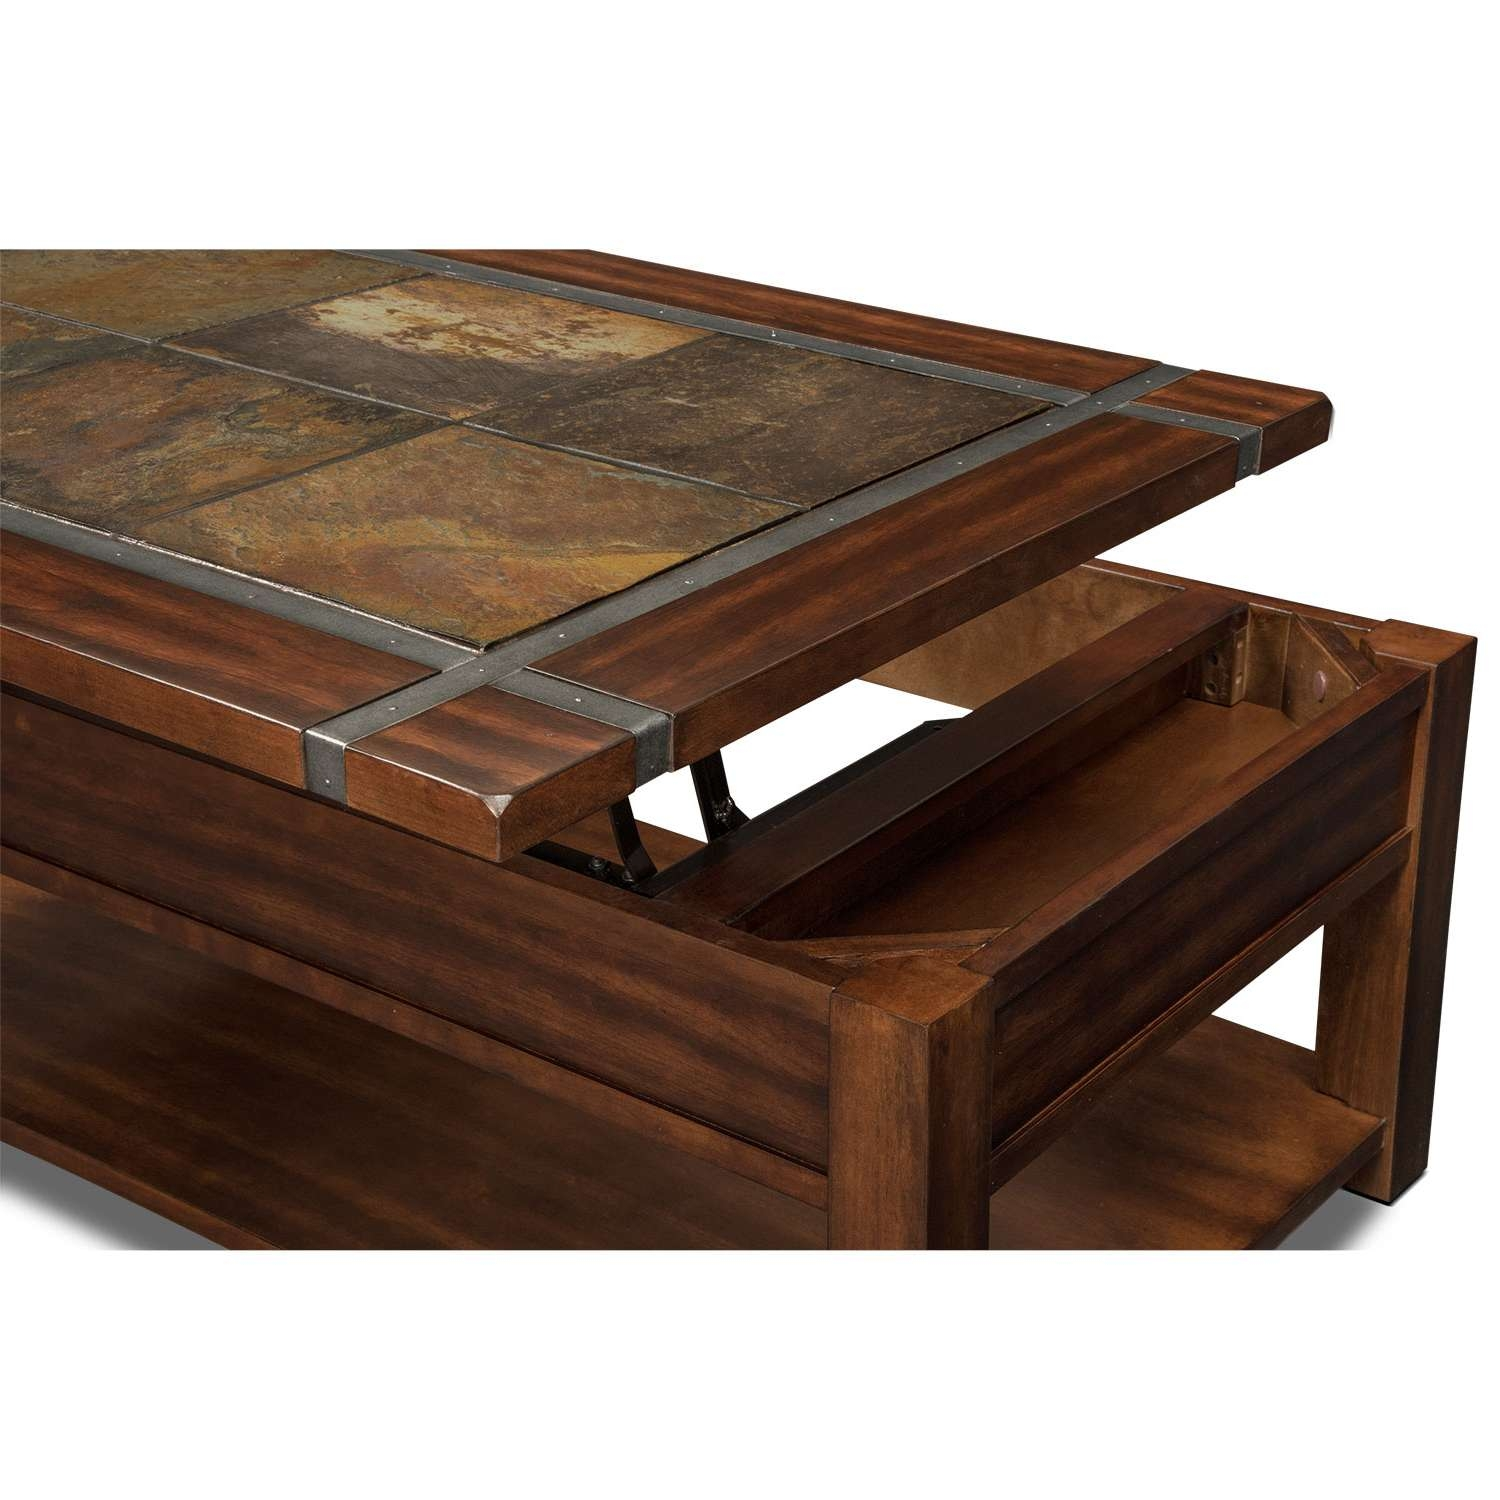 Value City Intended For Well Known Lift Top Coffee Table Furniture (Gallery 12 of 20)